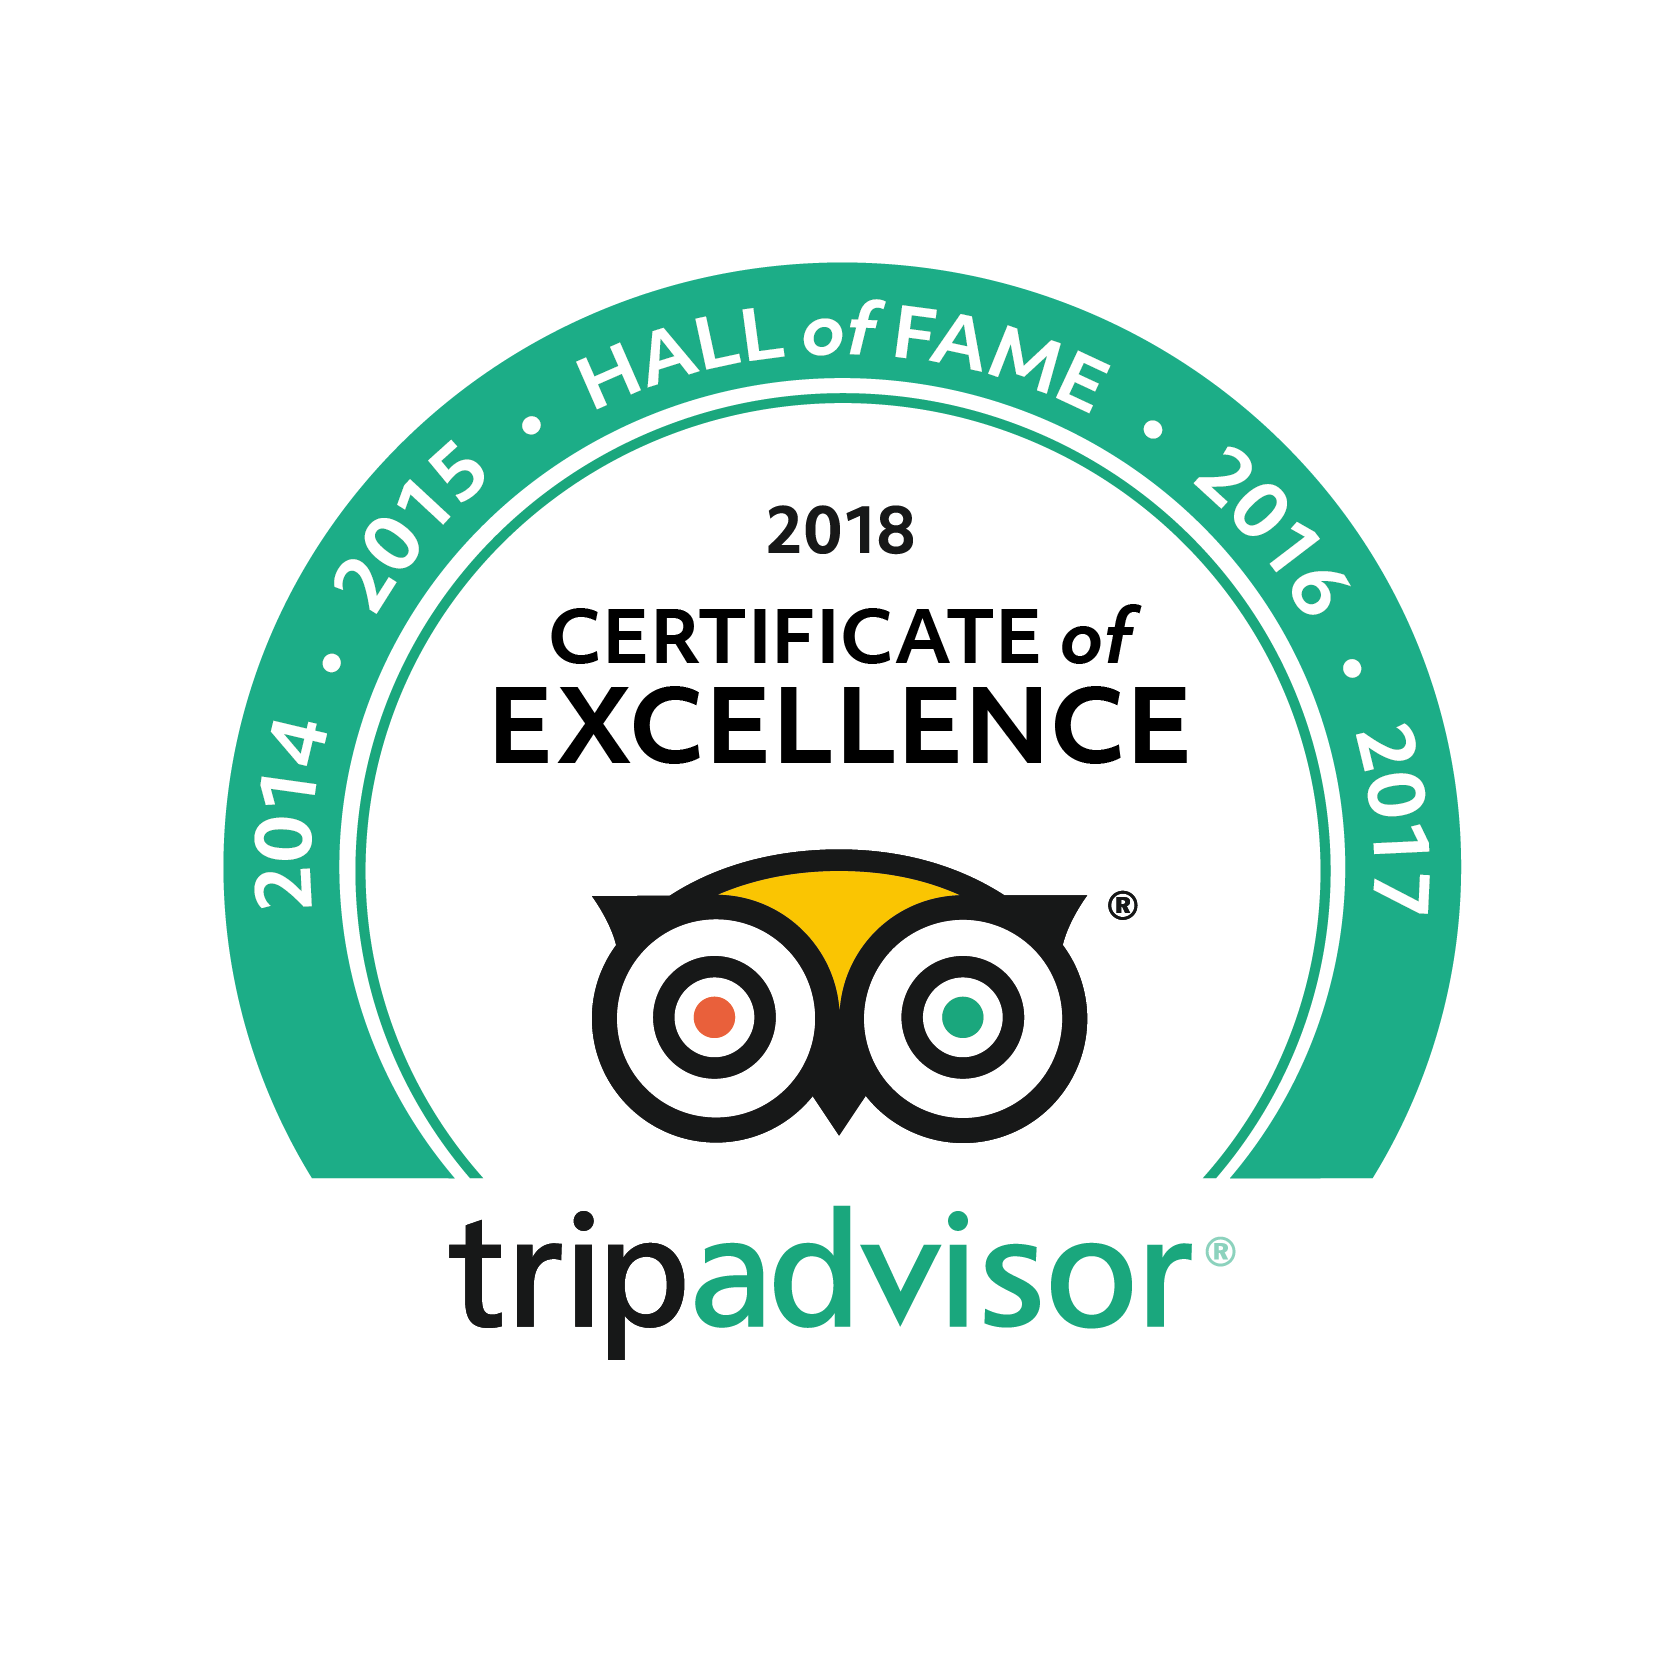 Certificate of Excellence: Hall of Fame - Awarded for 5 consecutive years of excellent service to our guests! Here's to another 5 years and more!